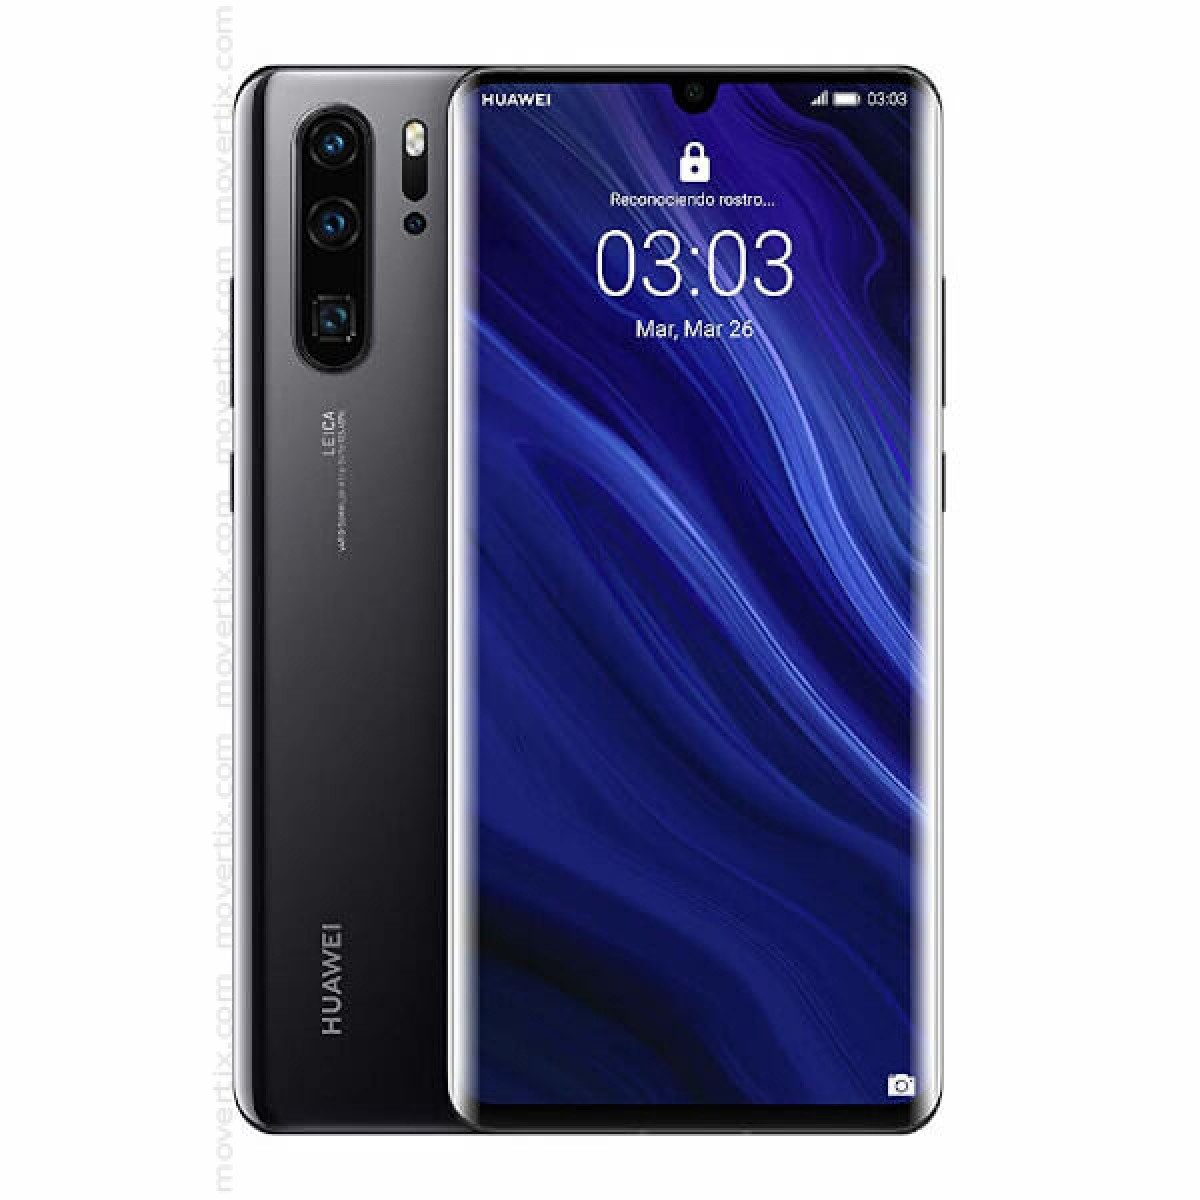 Huawei P30 Pro Dual Sim Black 128gb And 6gb Ram Vog L29 6901443292578 Movertix Mobile Phones Shop